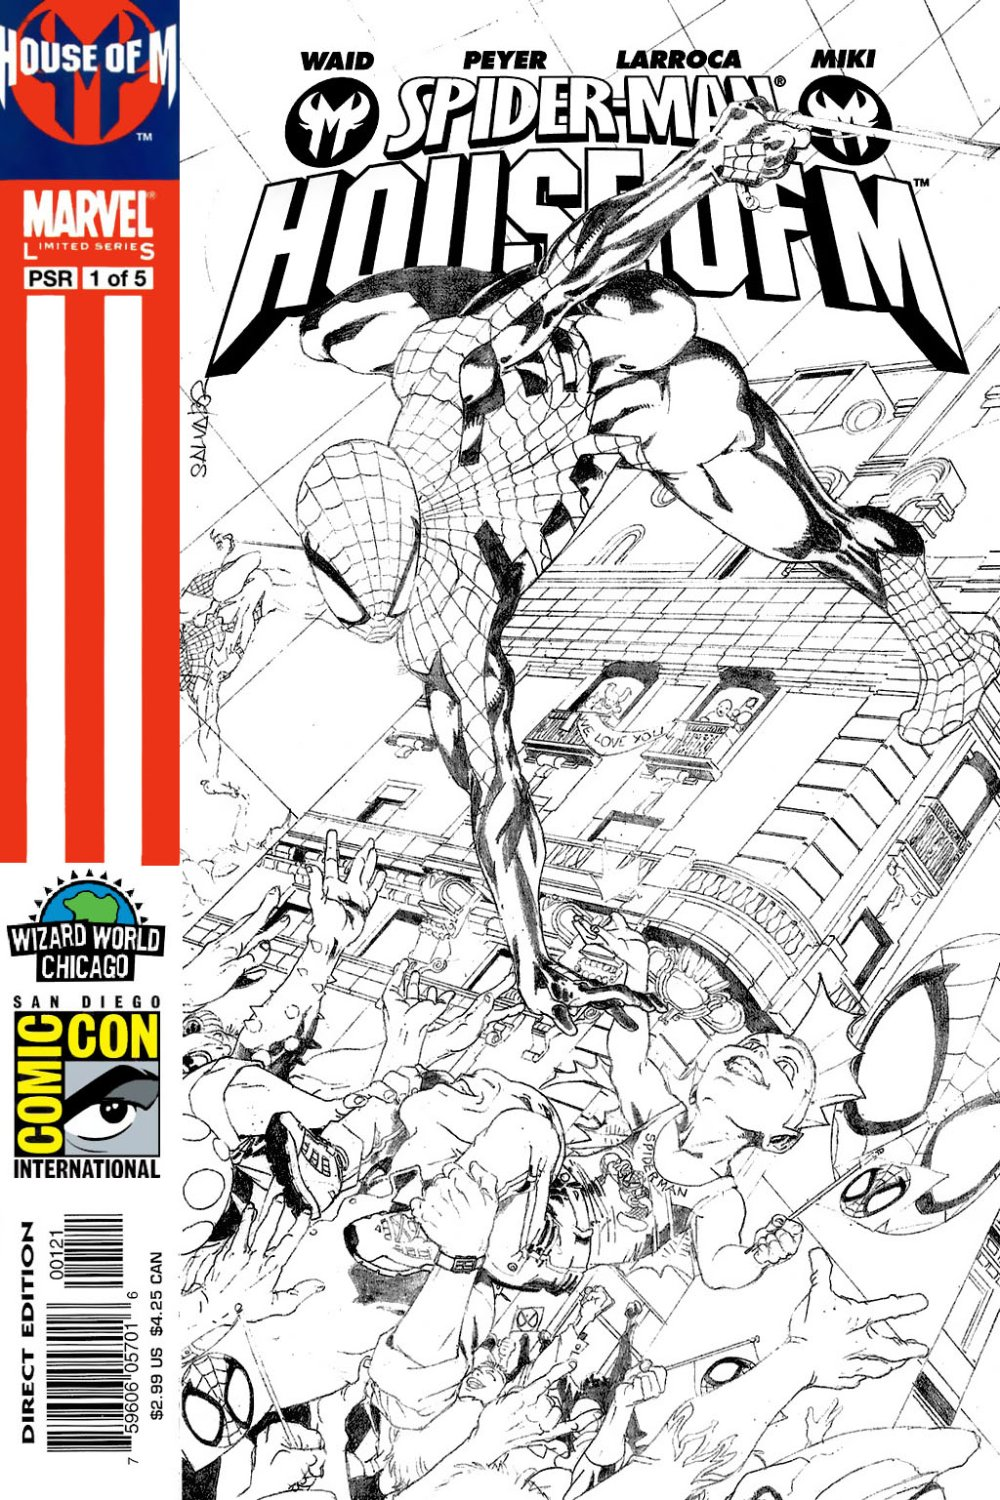 Spider-Man- House Of M [Marvel] Mini 1 0001b.jpg